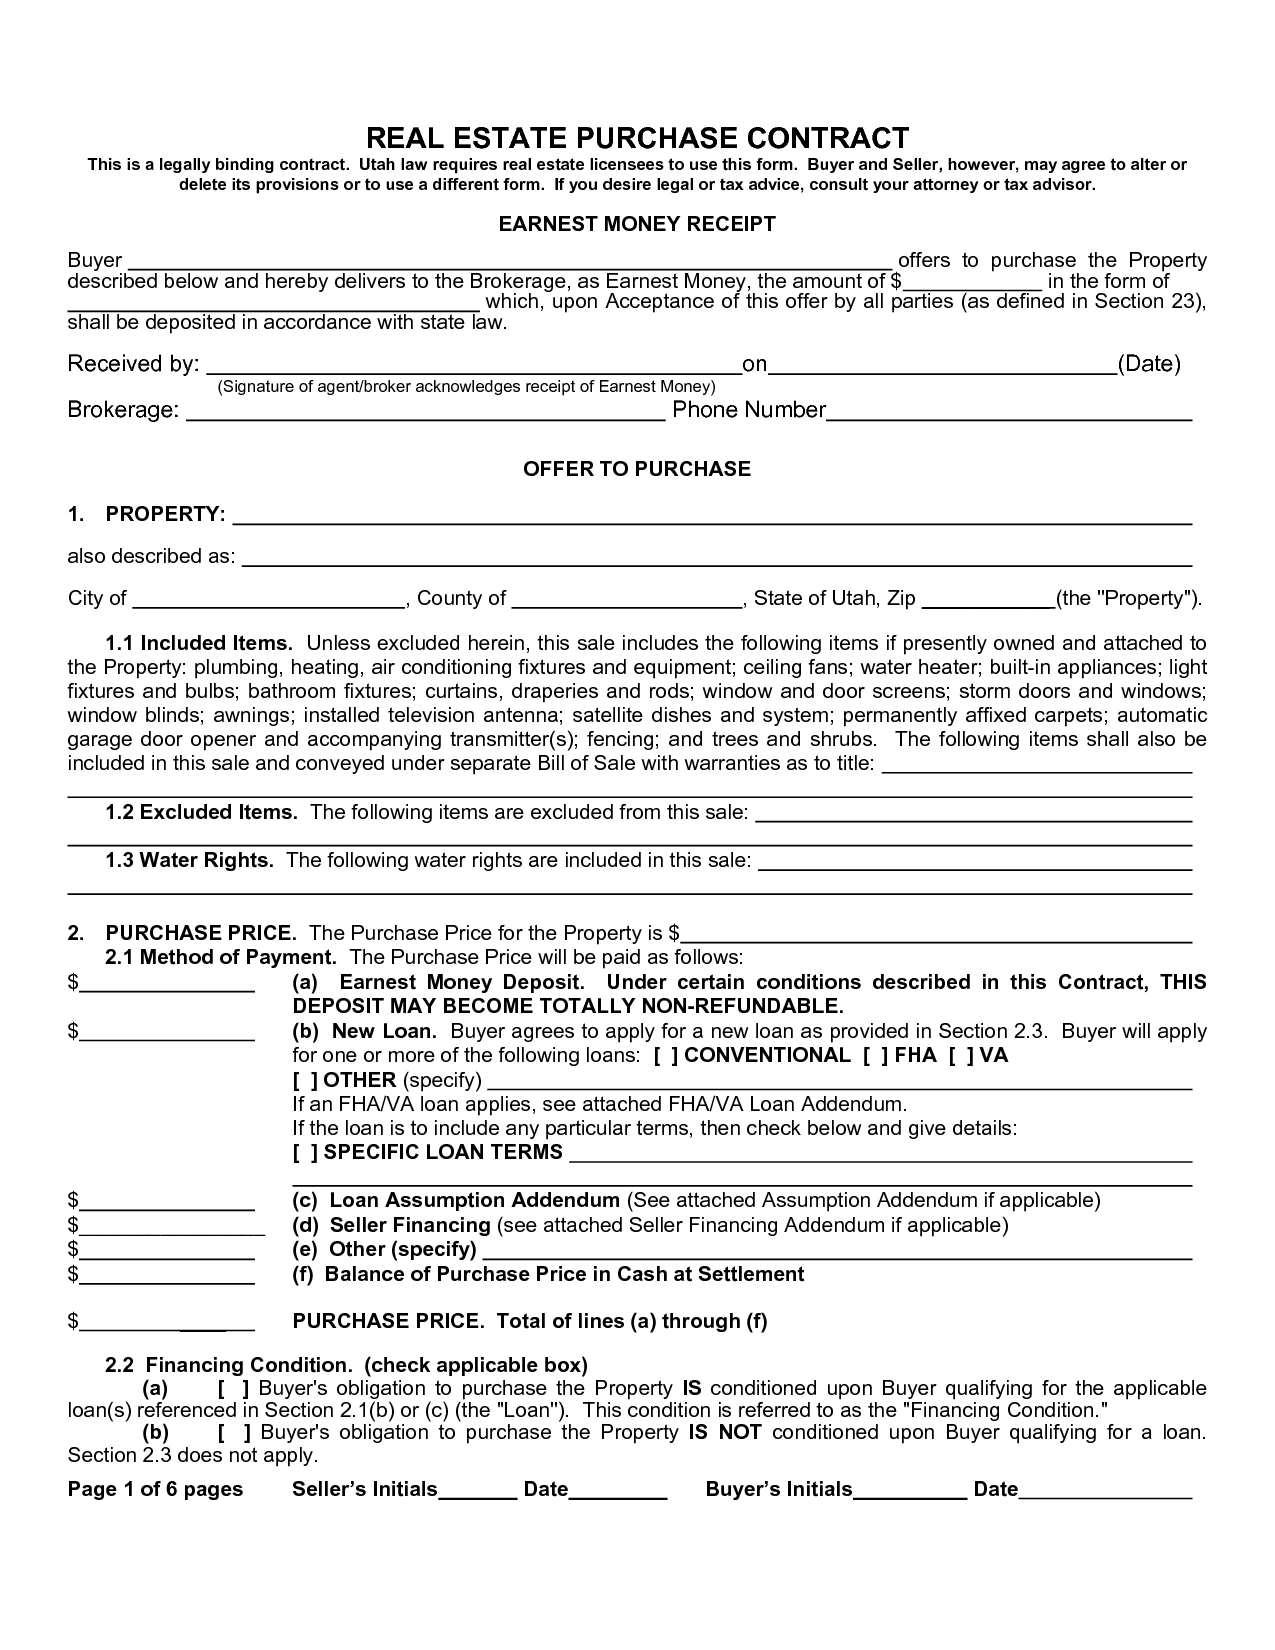 Real estate purchase agreement form sample image gallery for Builder contract for new home